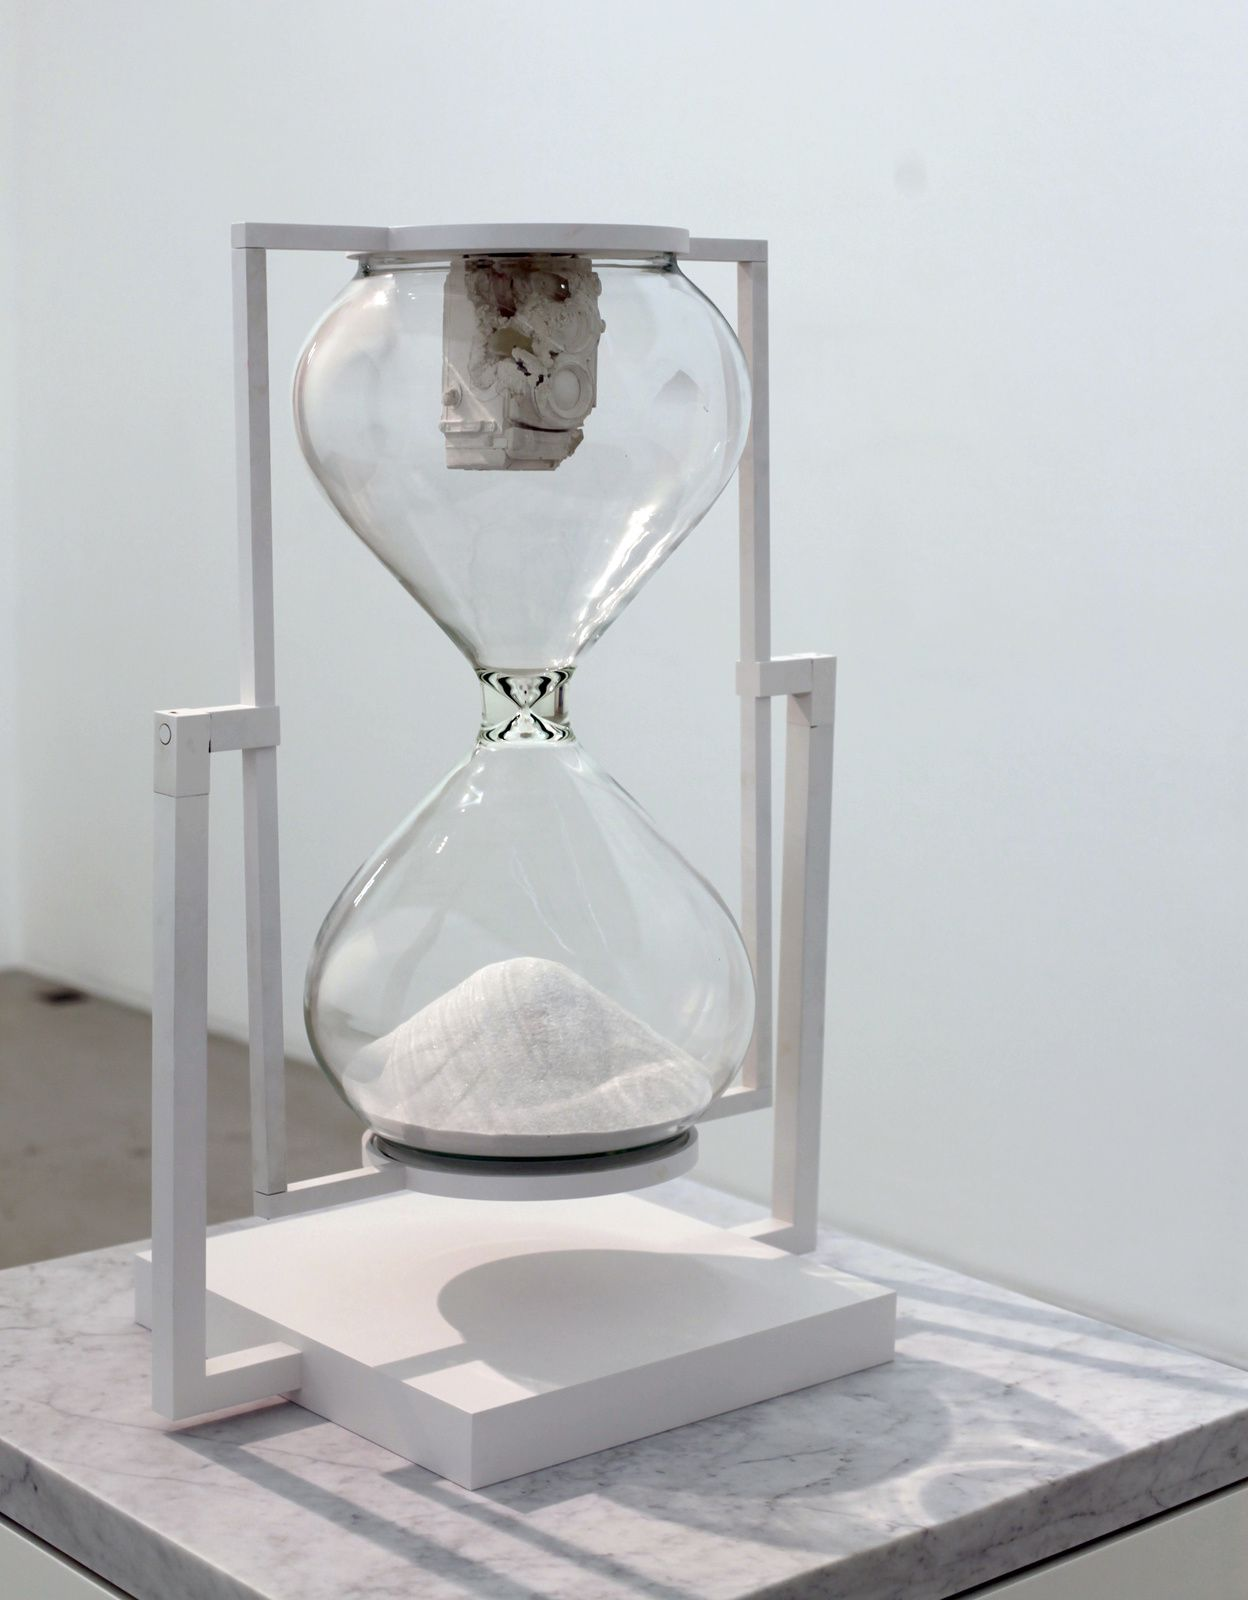 """Hourglass"", 2017 de Daniel ARSHAM- Courtesy Galerie PERROTIN © Photo Éric Simon"